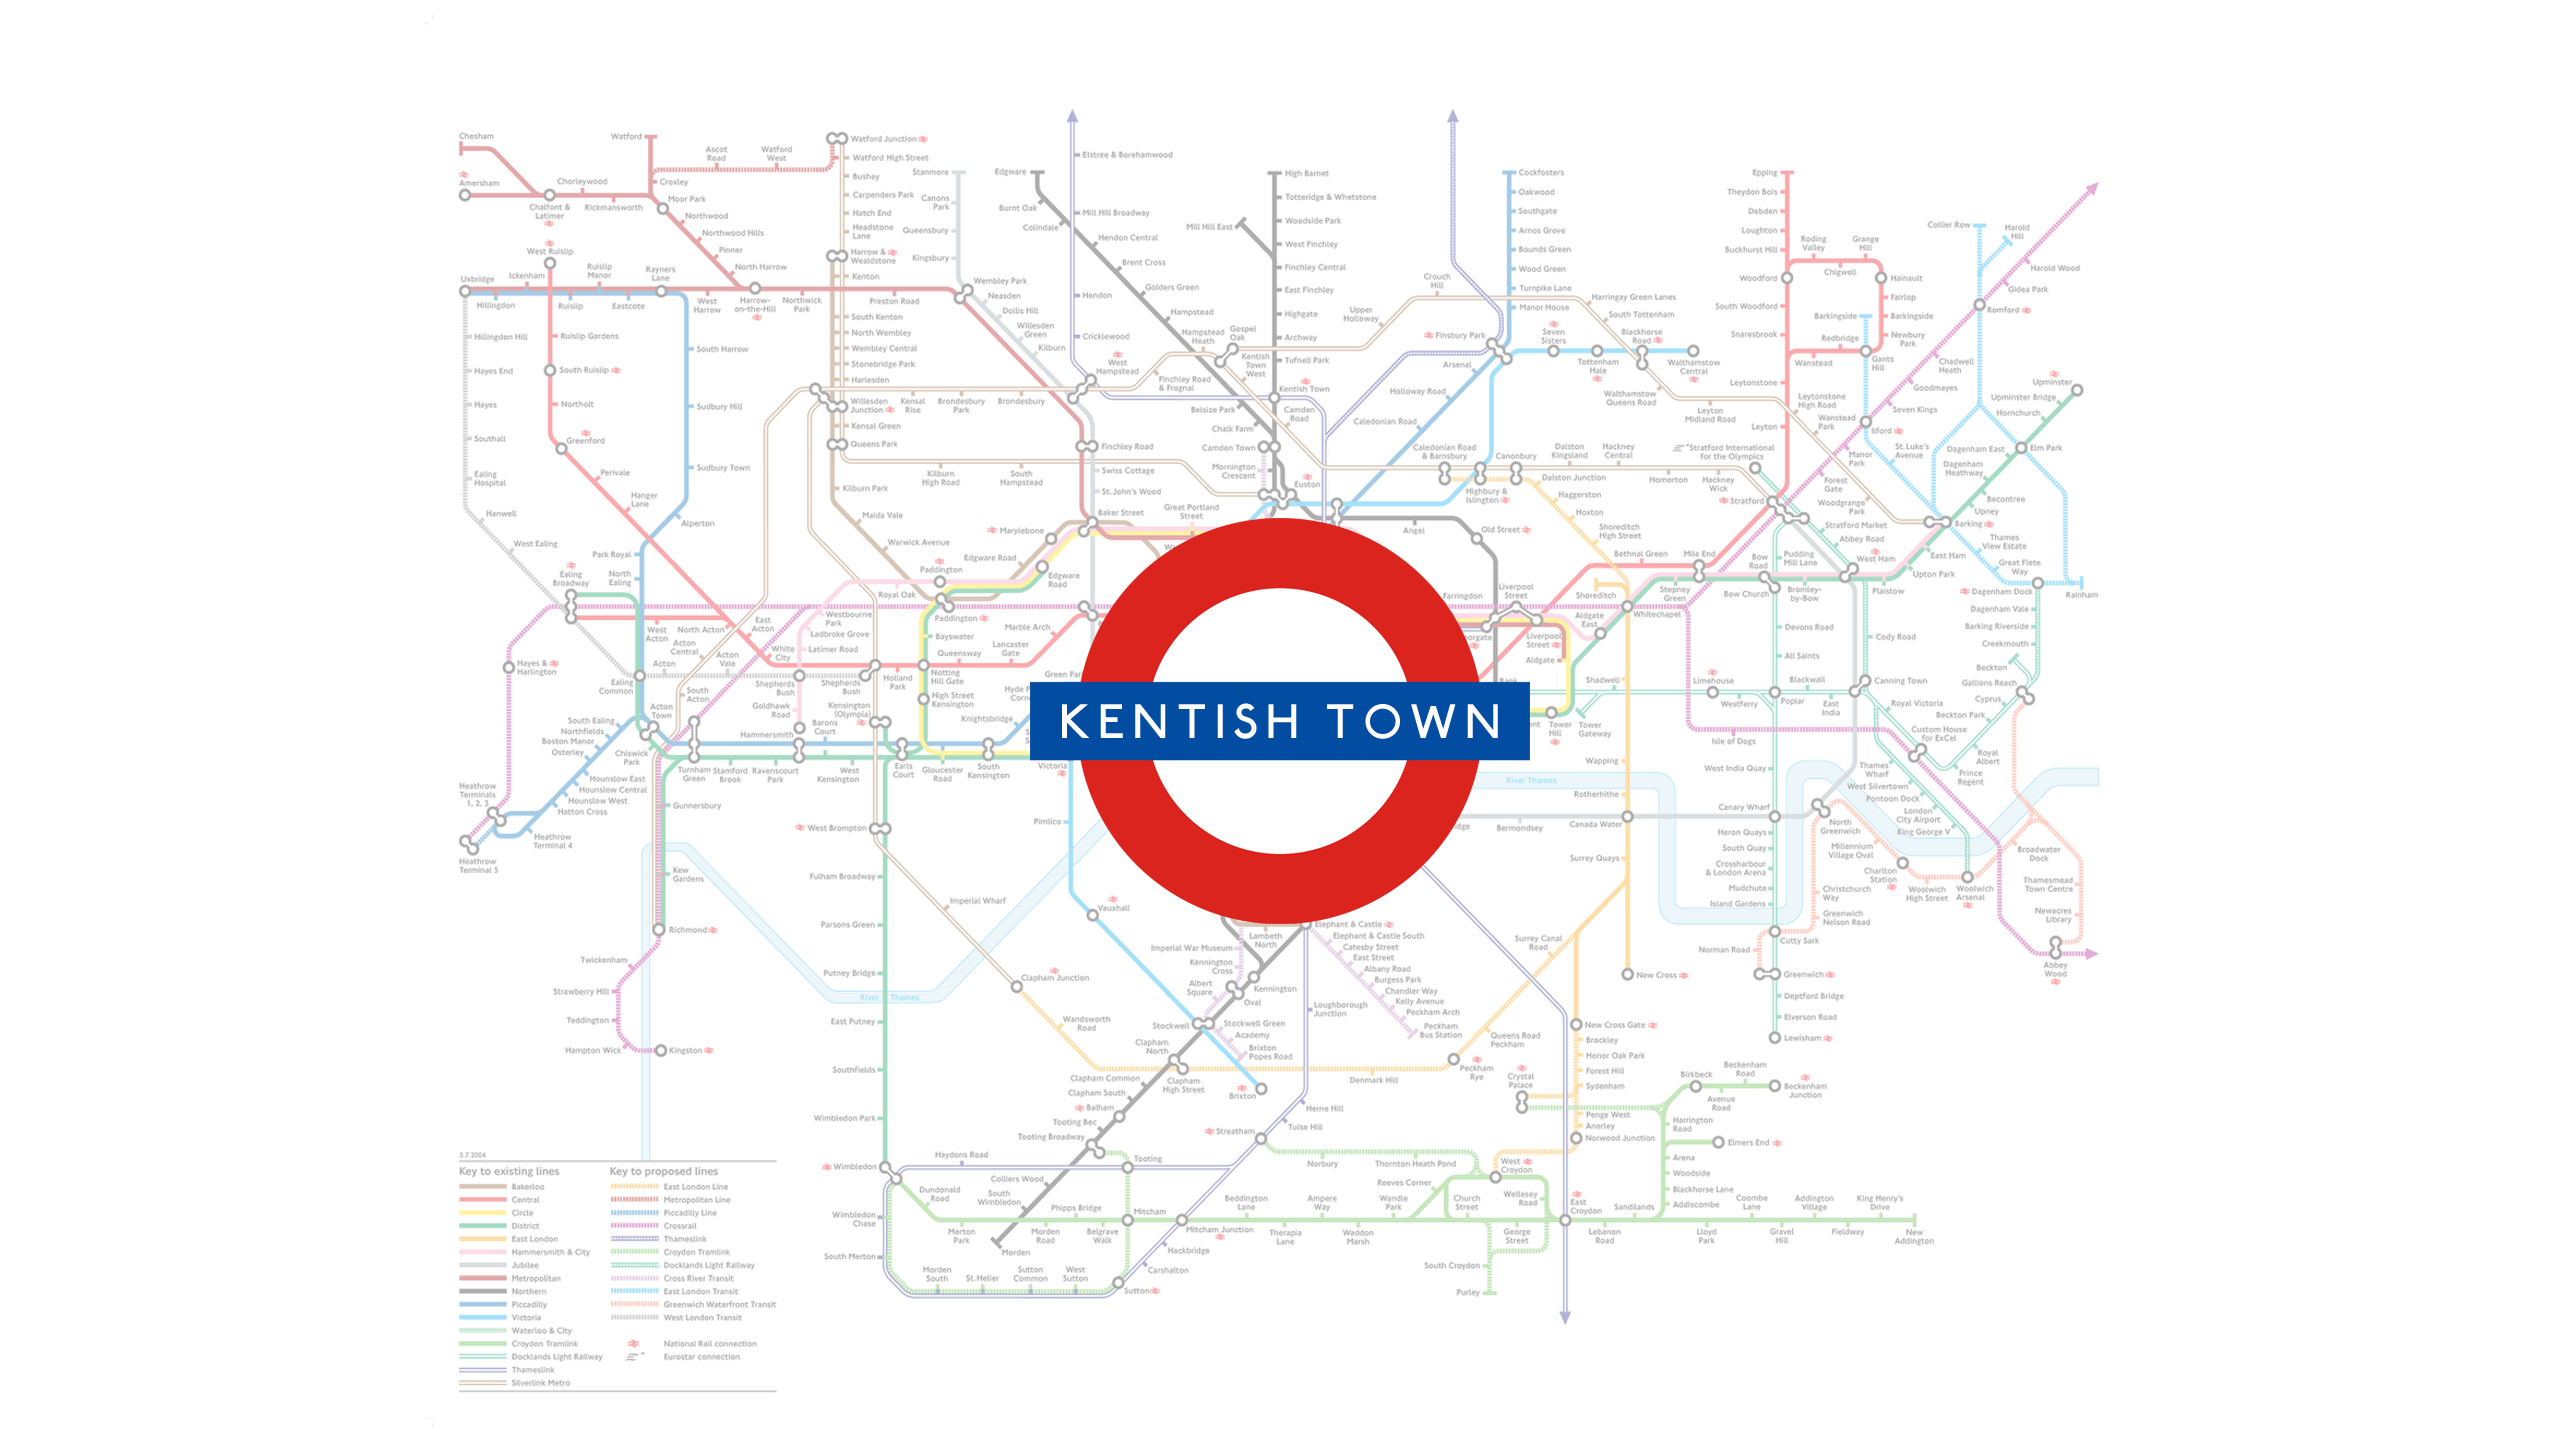 Kentish Town (Map)